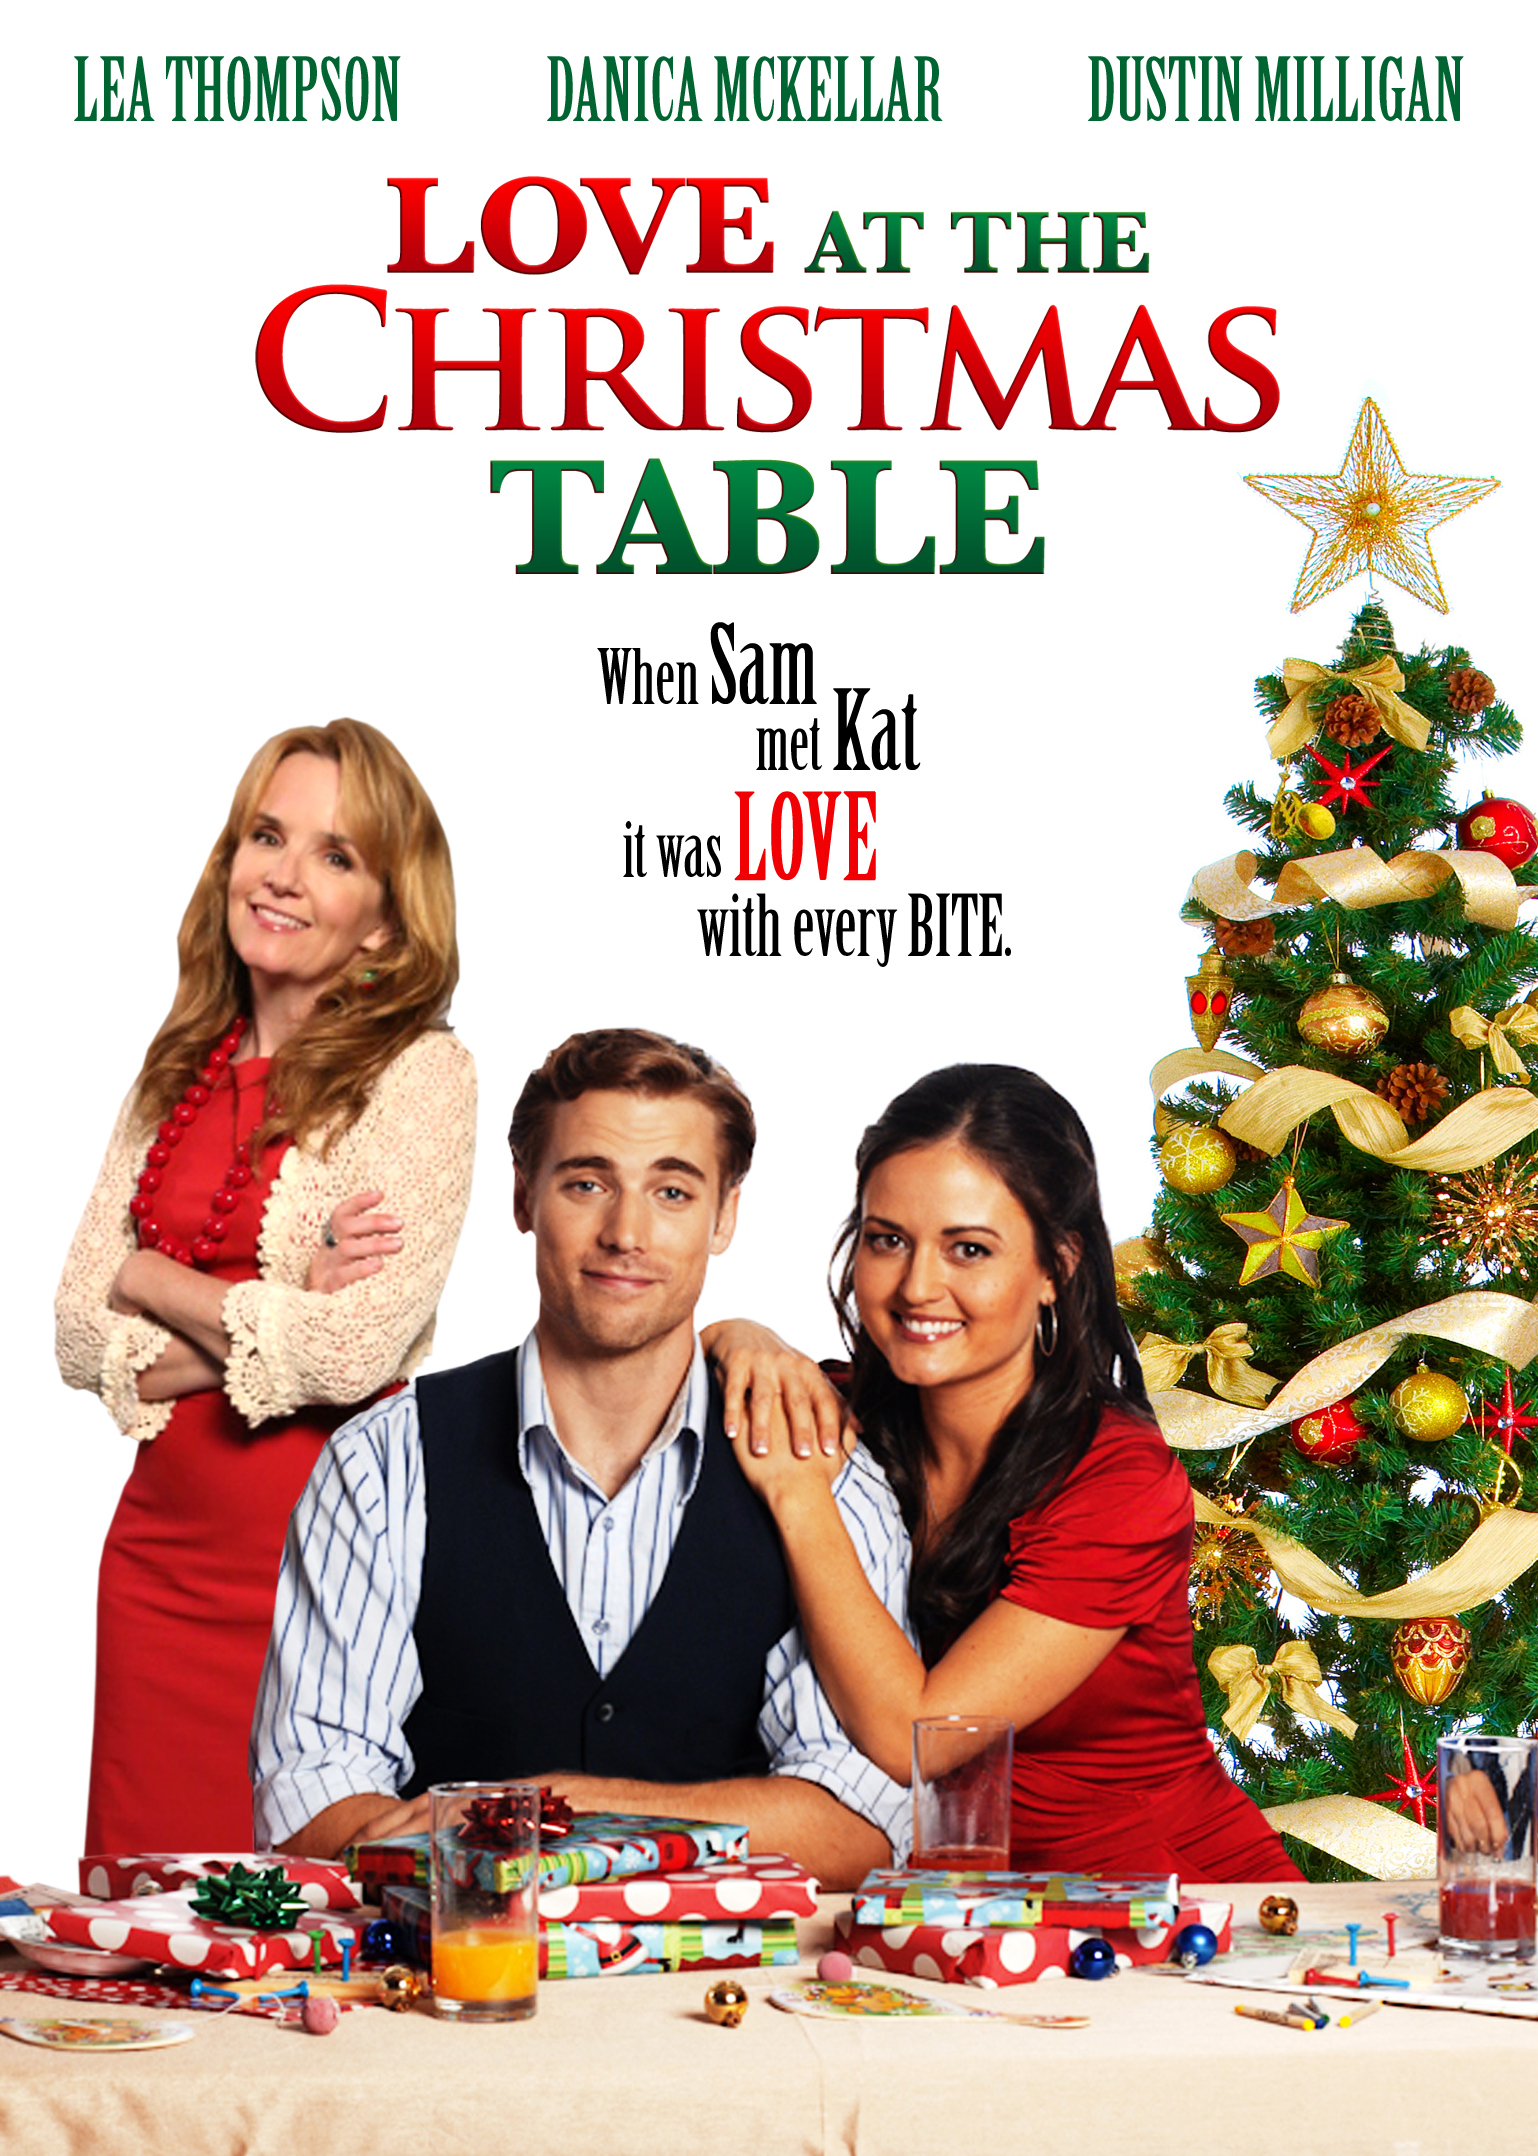 A Dream Of Christmas Cast.Love At The Christmas Table Tv Movie 2012 Imdb